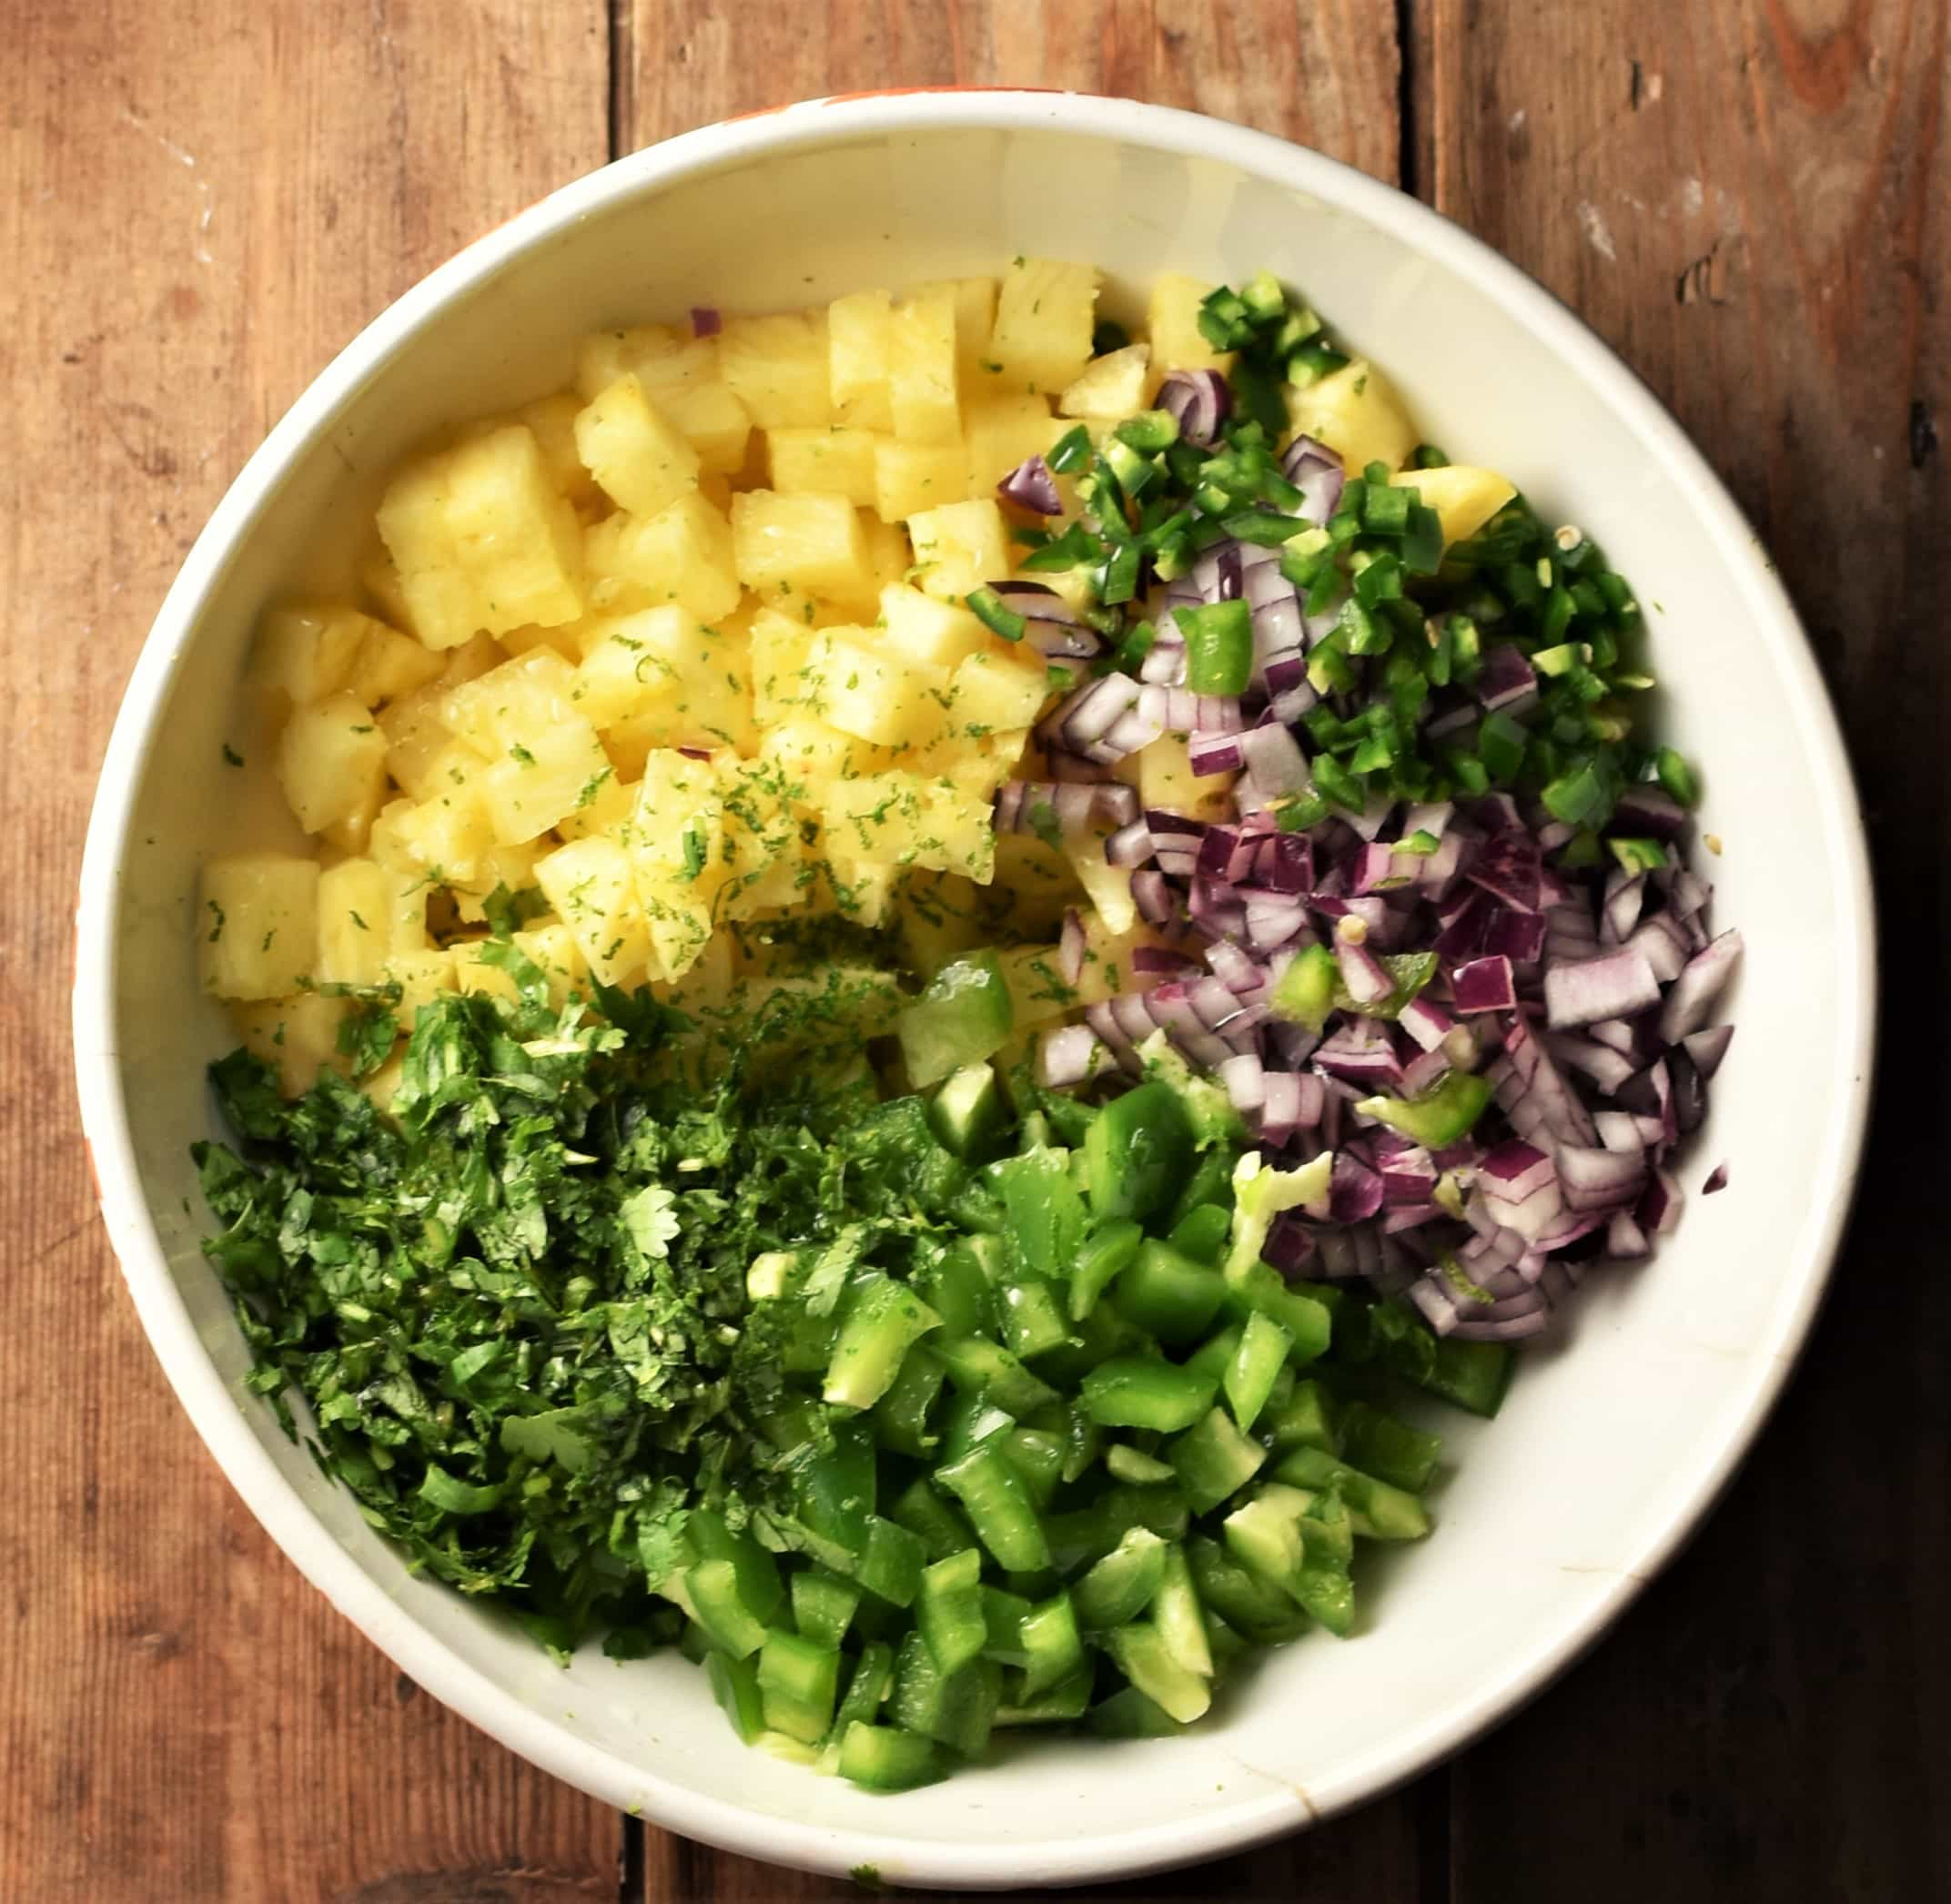 Chopped pineapple, green pepper, cilantro and red onion in white bowl.